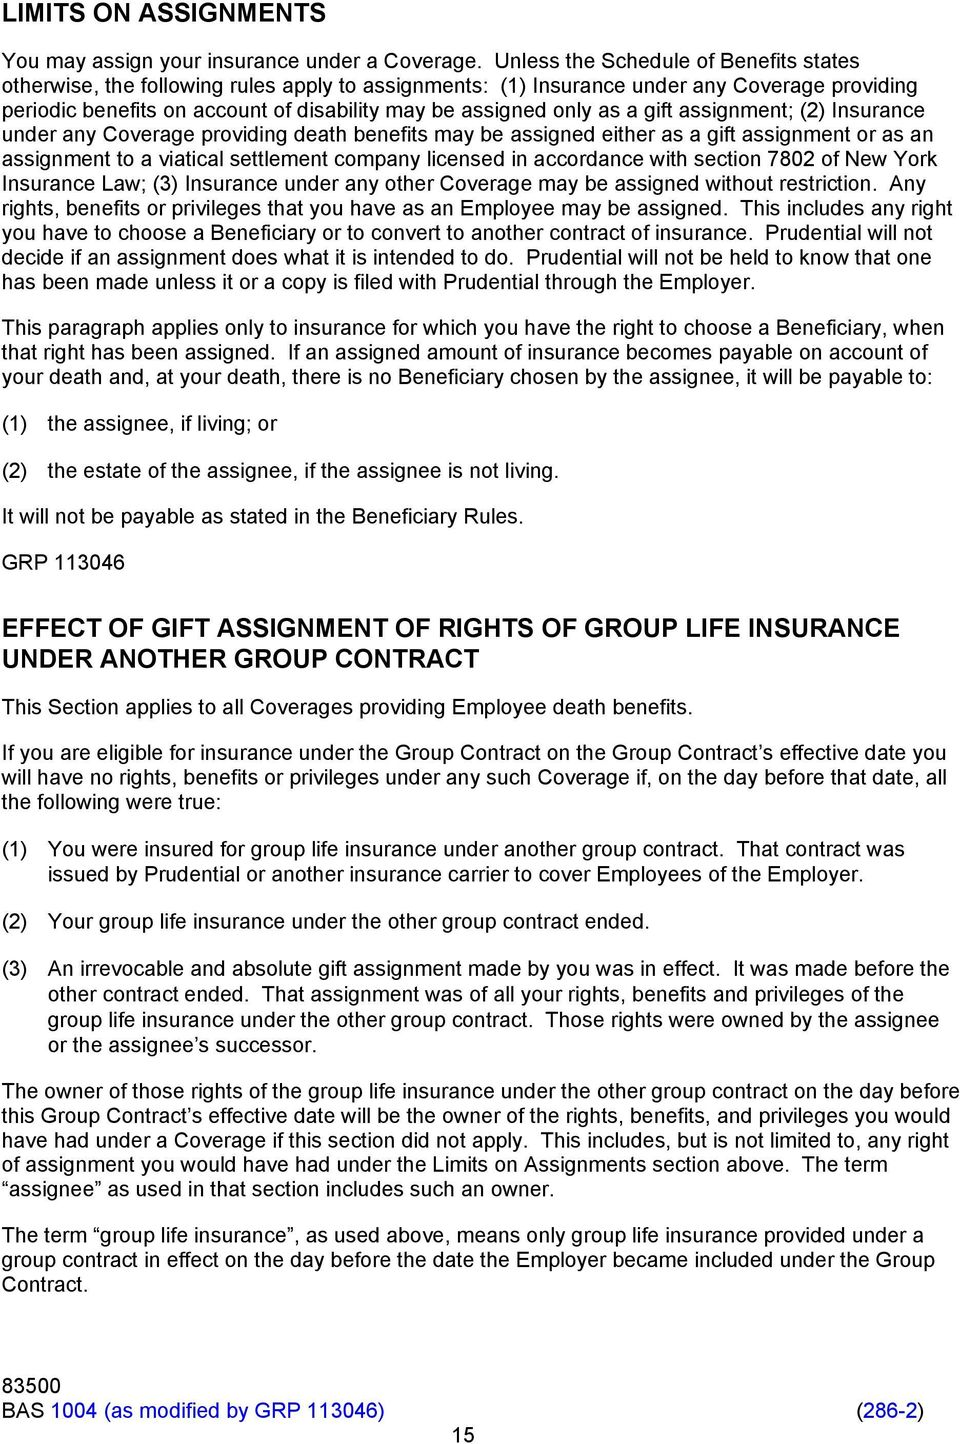 as a gift assignment; (2) Insurance under any Coverage providing death benefits may be assigned either as a gift assignment or as an assignment to a viatical settlement company licensed in accordance